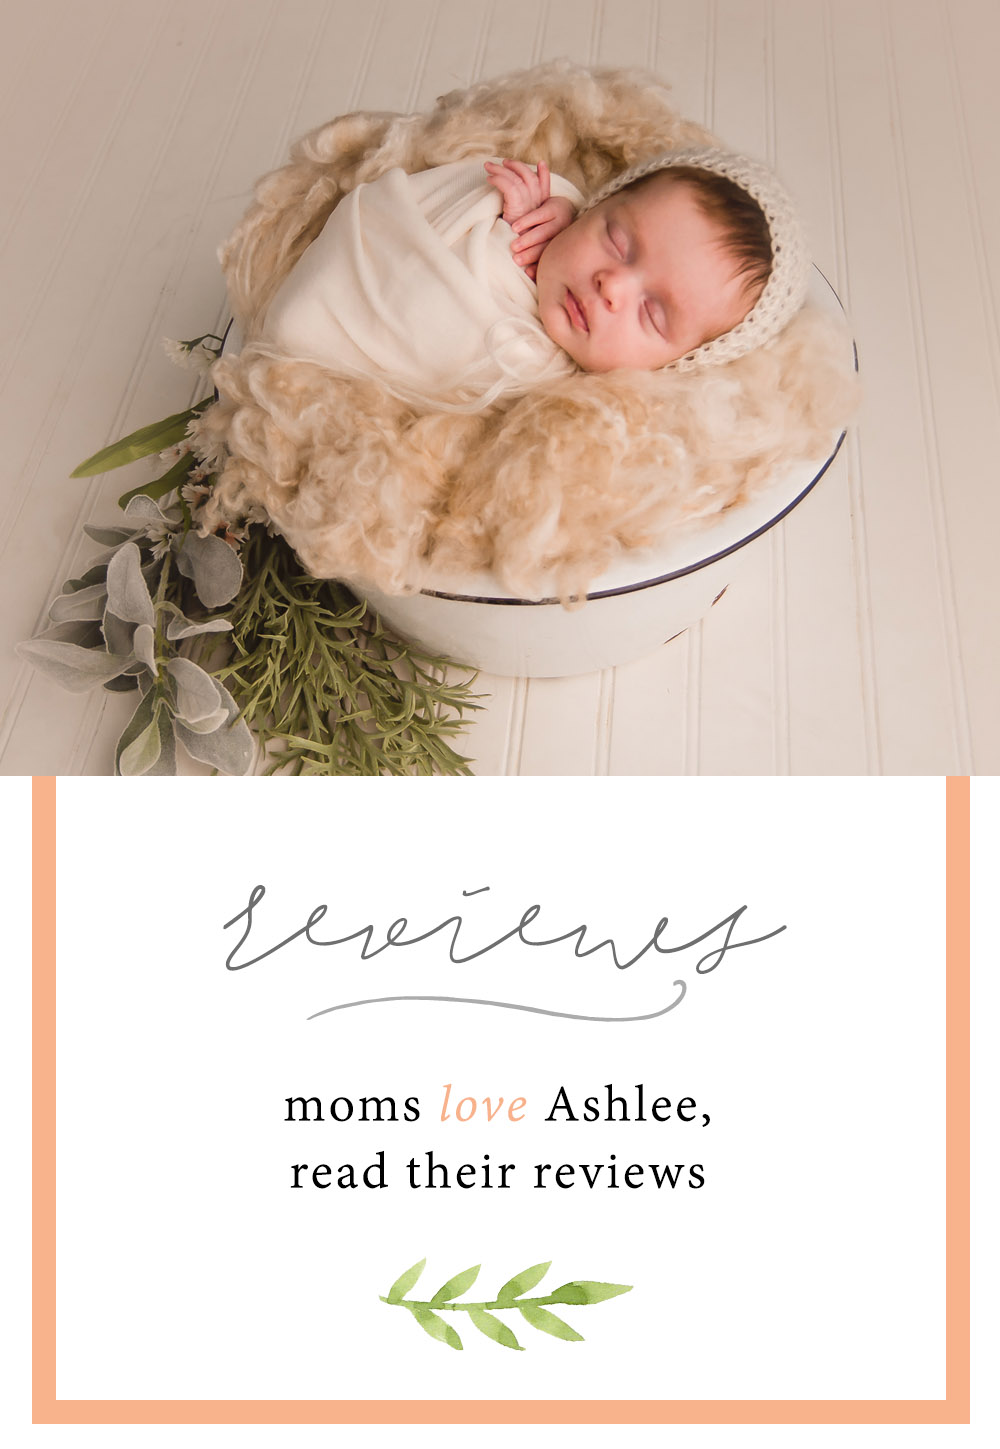 reveiws from other moms who loved their newborn photography experience